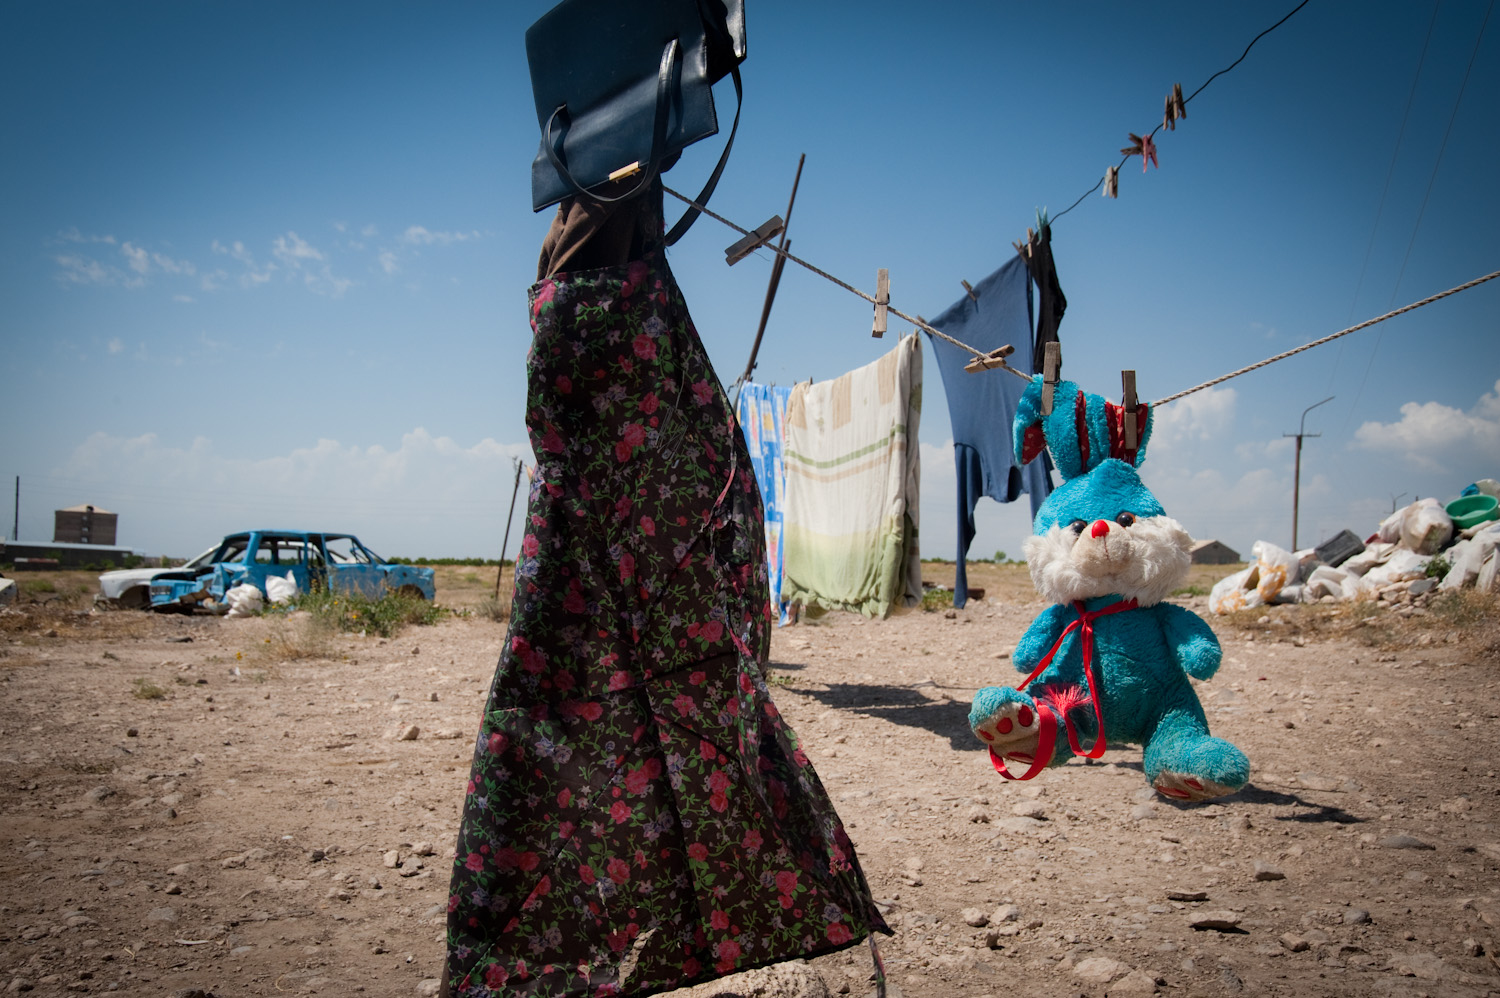 """Ruzana and her 4 children live in a shack located in an open field close to the border with Turkey with a view of Mount Ararat. """"We live in the middle of nowhere. If we scream, will anyone hear our voice?"""" She asked."""